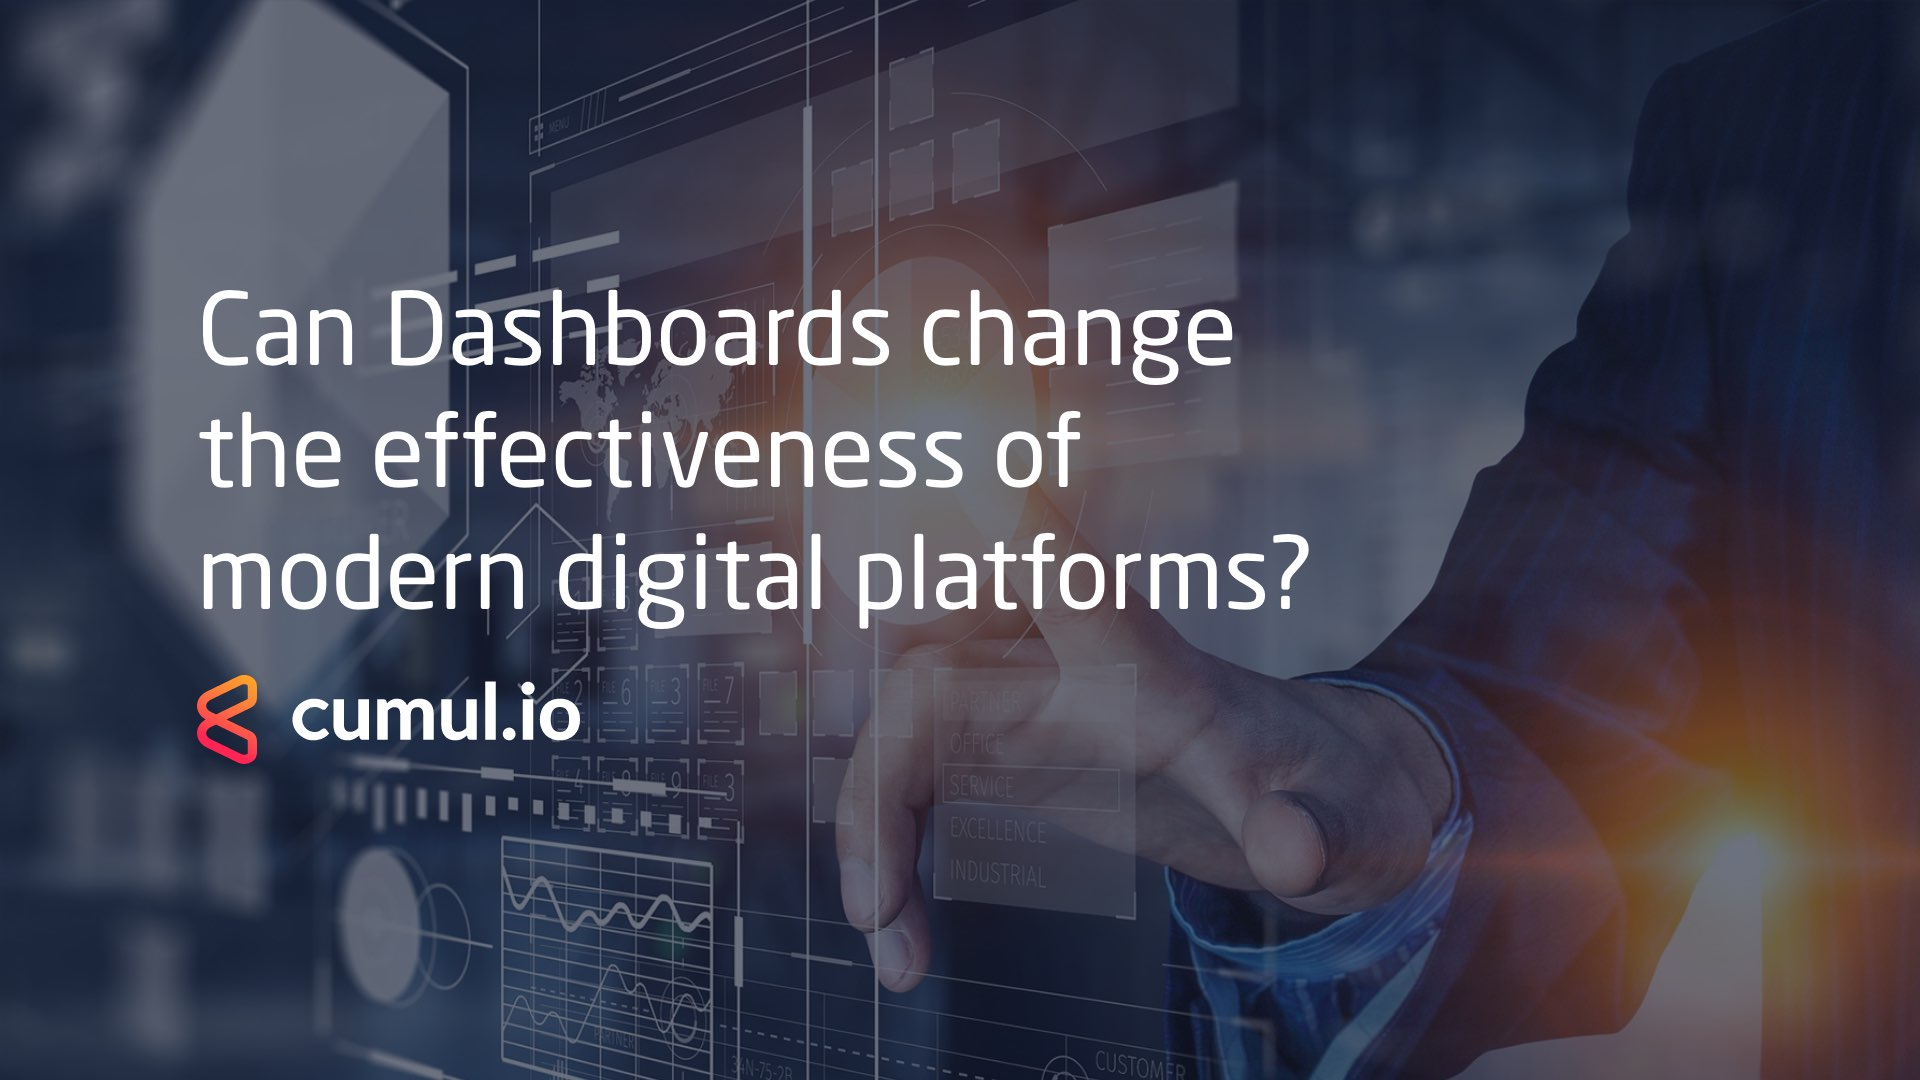 Can Dashboards change the effectiveness of modern digital platforms?